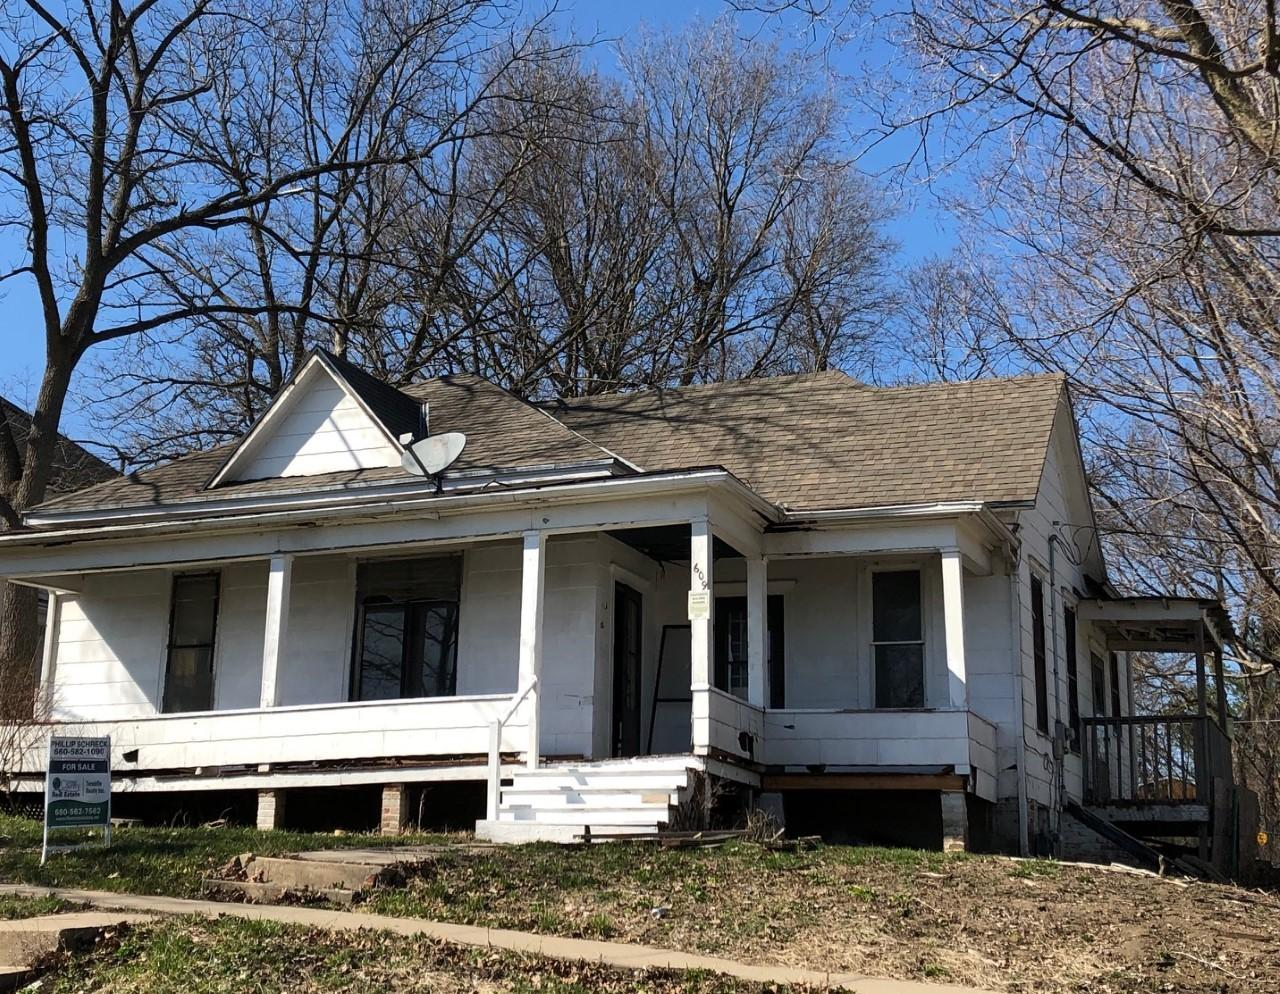 609 E 4TH ST, Maryville, Missouri 64468, 2 Bedrooms Bedrooms, ,1 BathroomBathrooms,Residential,4TH,4394